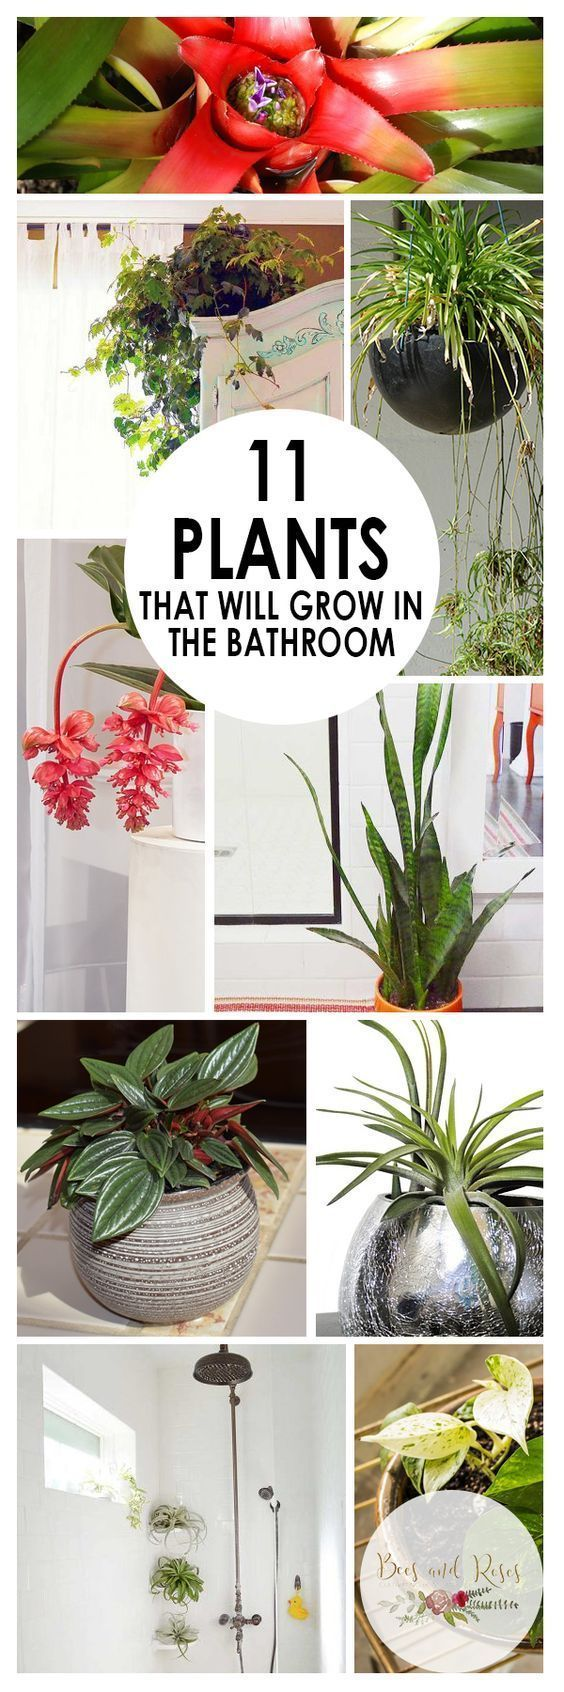 PIN 11 Plants That Will Grow In the Bathroom